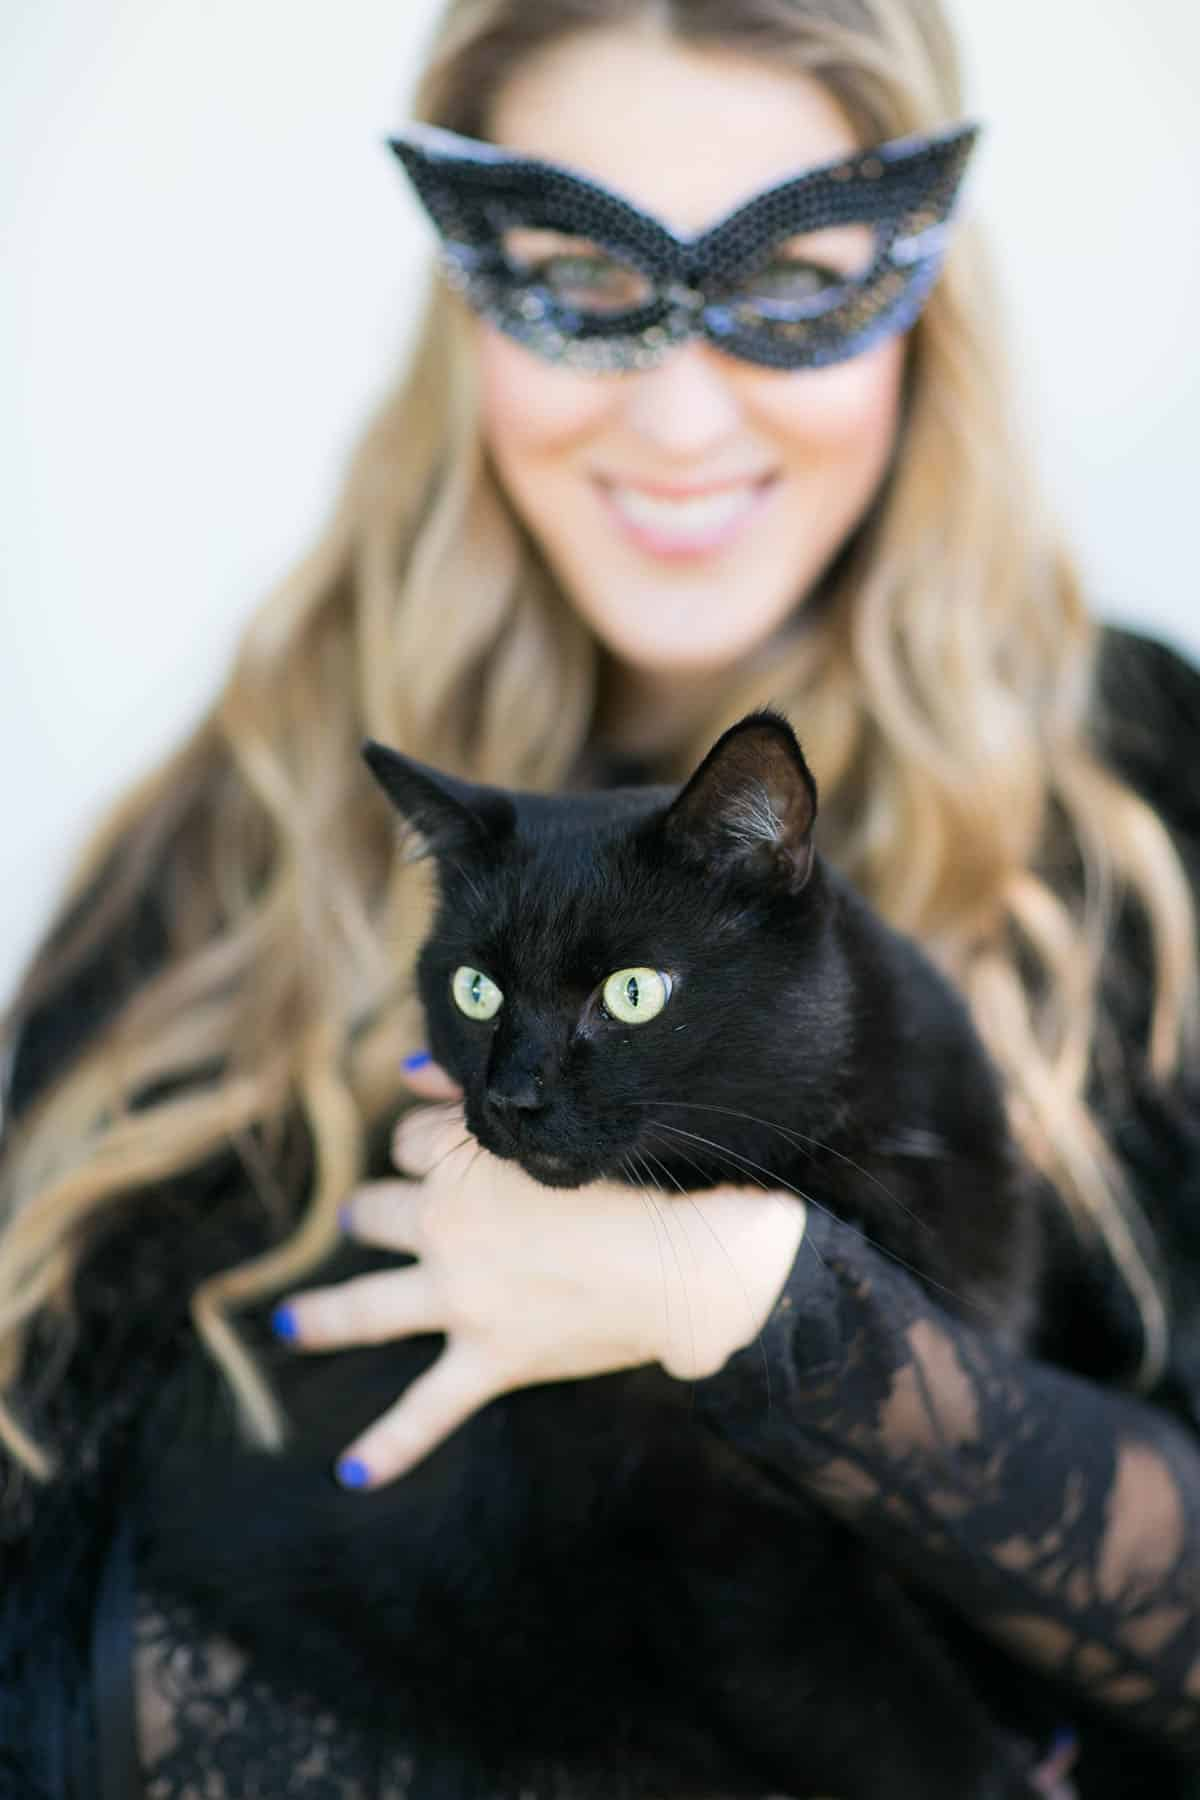 holding a black cat at a Halloween party